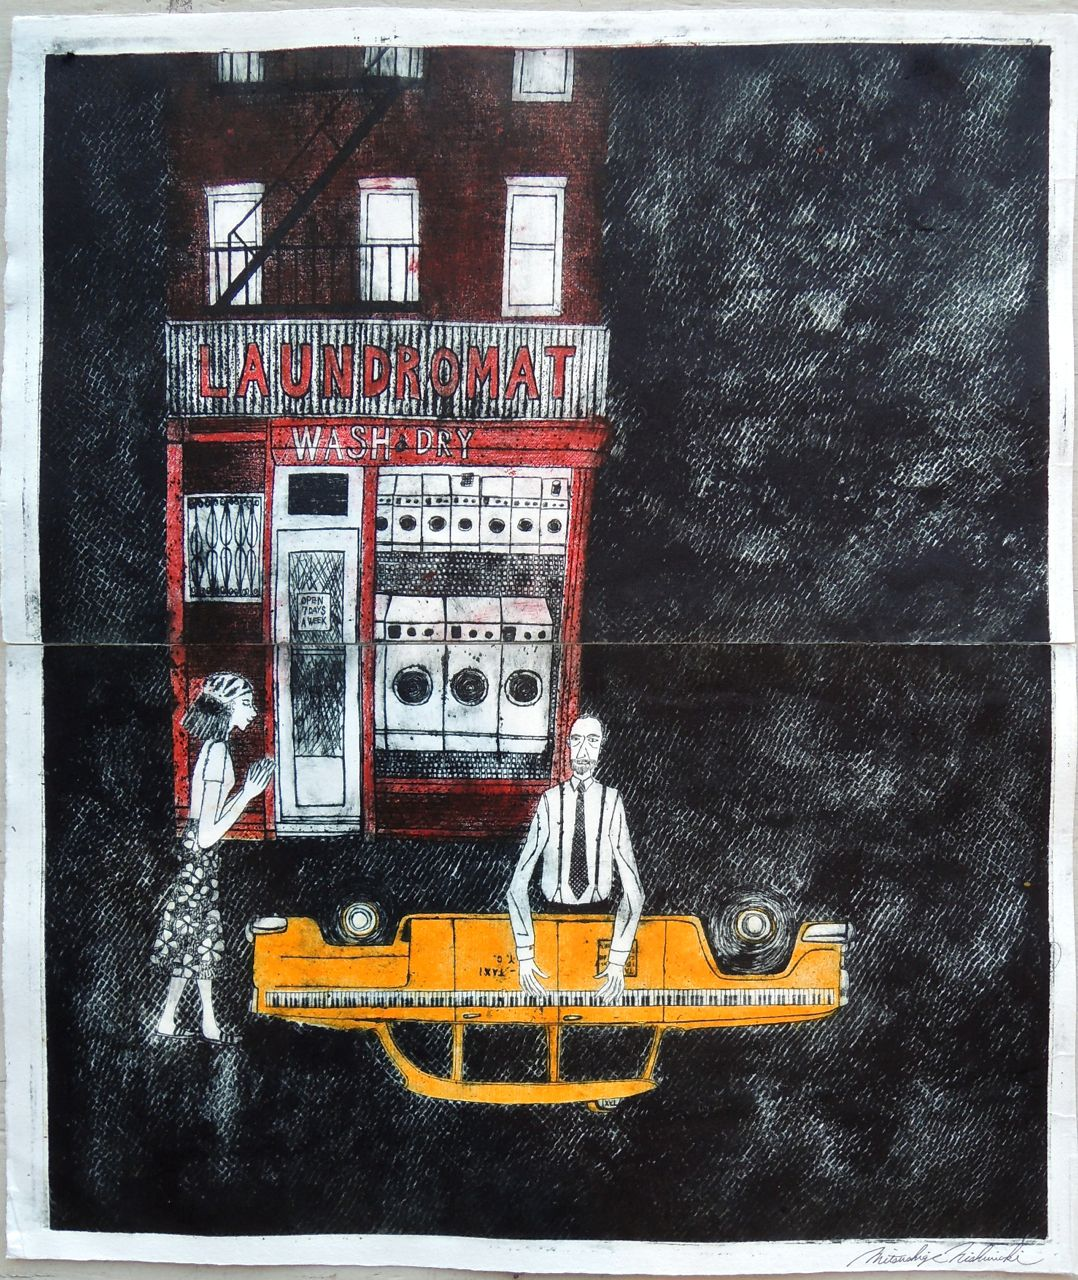 "Artist: Mitsushige Nishiwaki  Name: Laundromat Taxi Piano Player  Size: 20.25""x17.5""  Price:  Inquire   Method: etching  Condition: signed print"